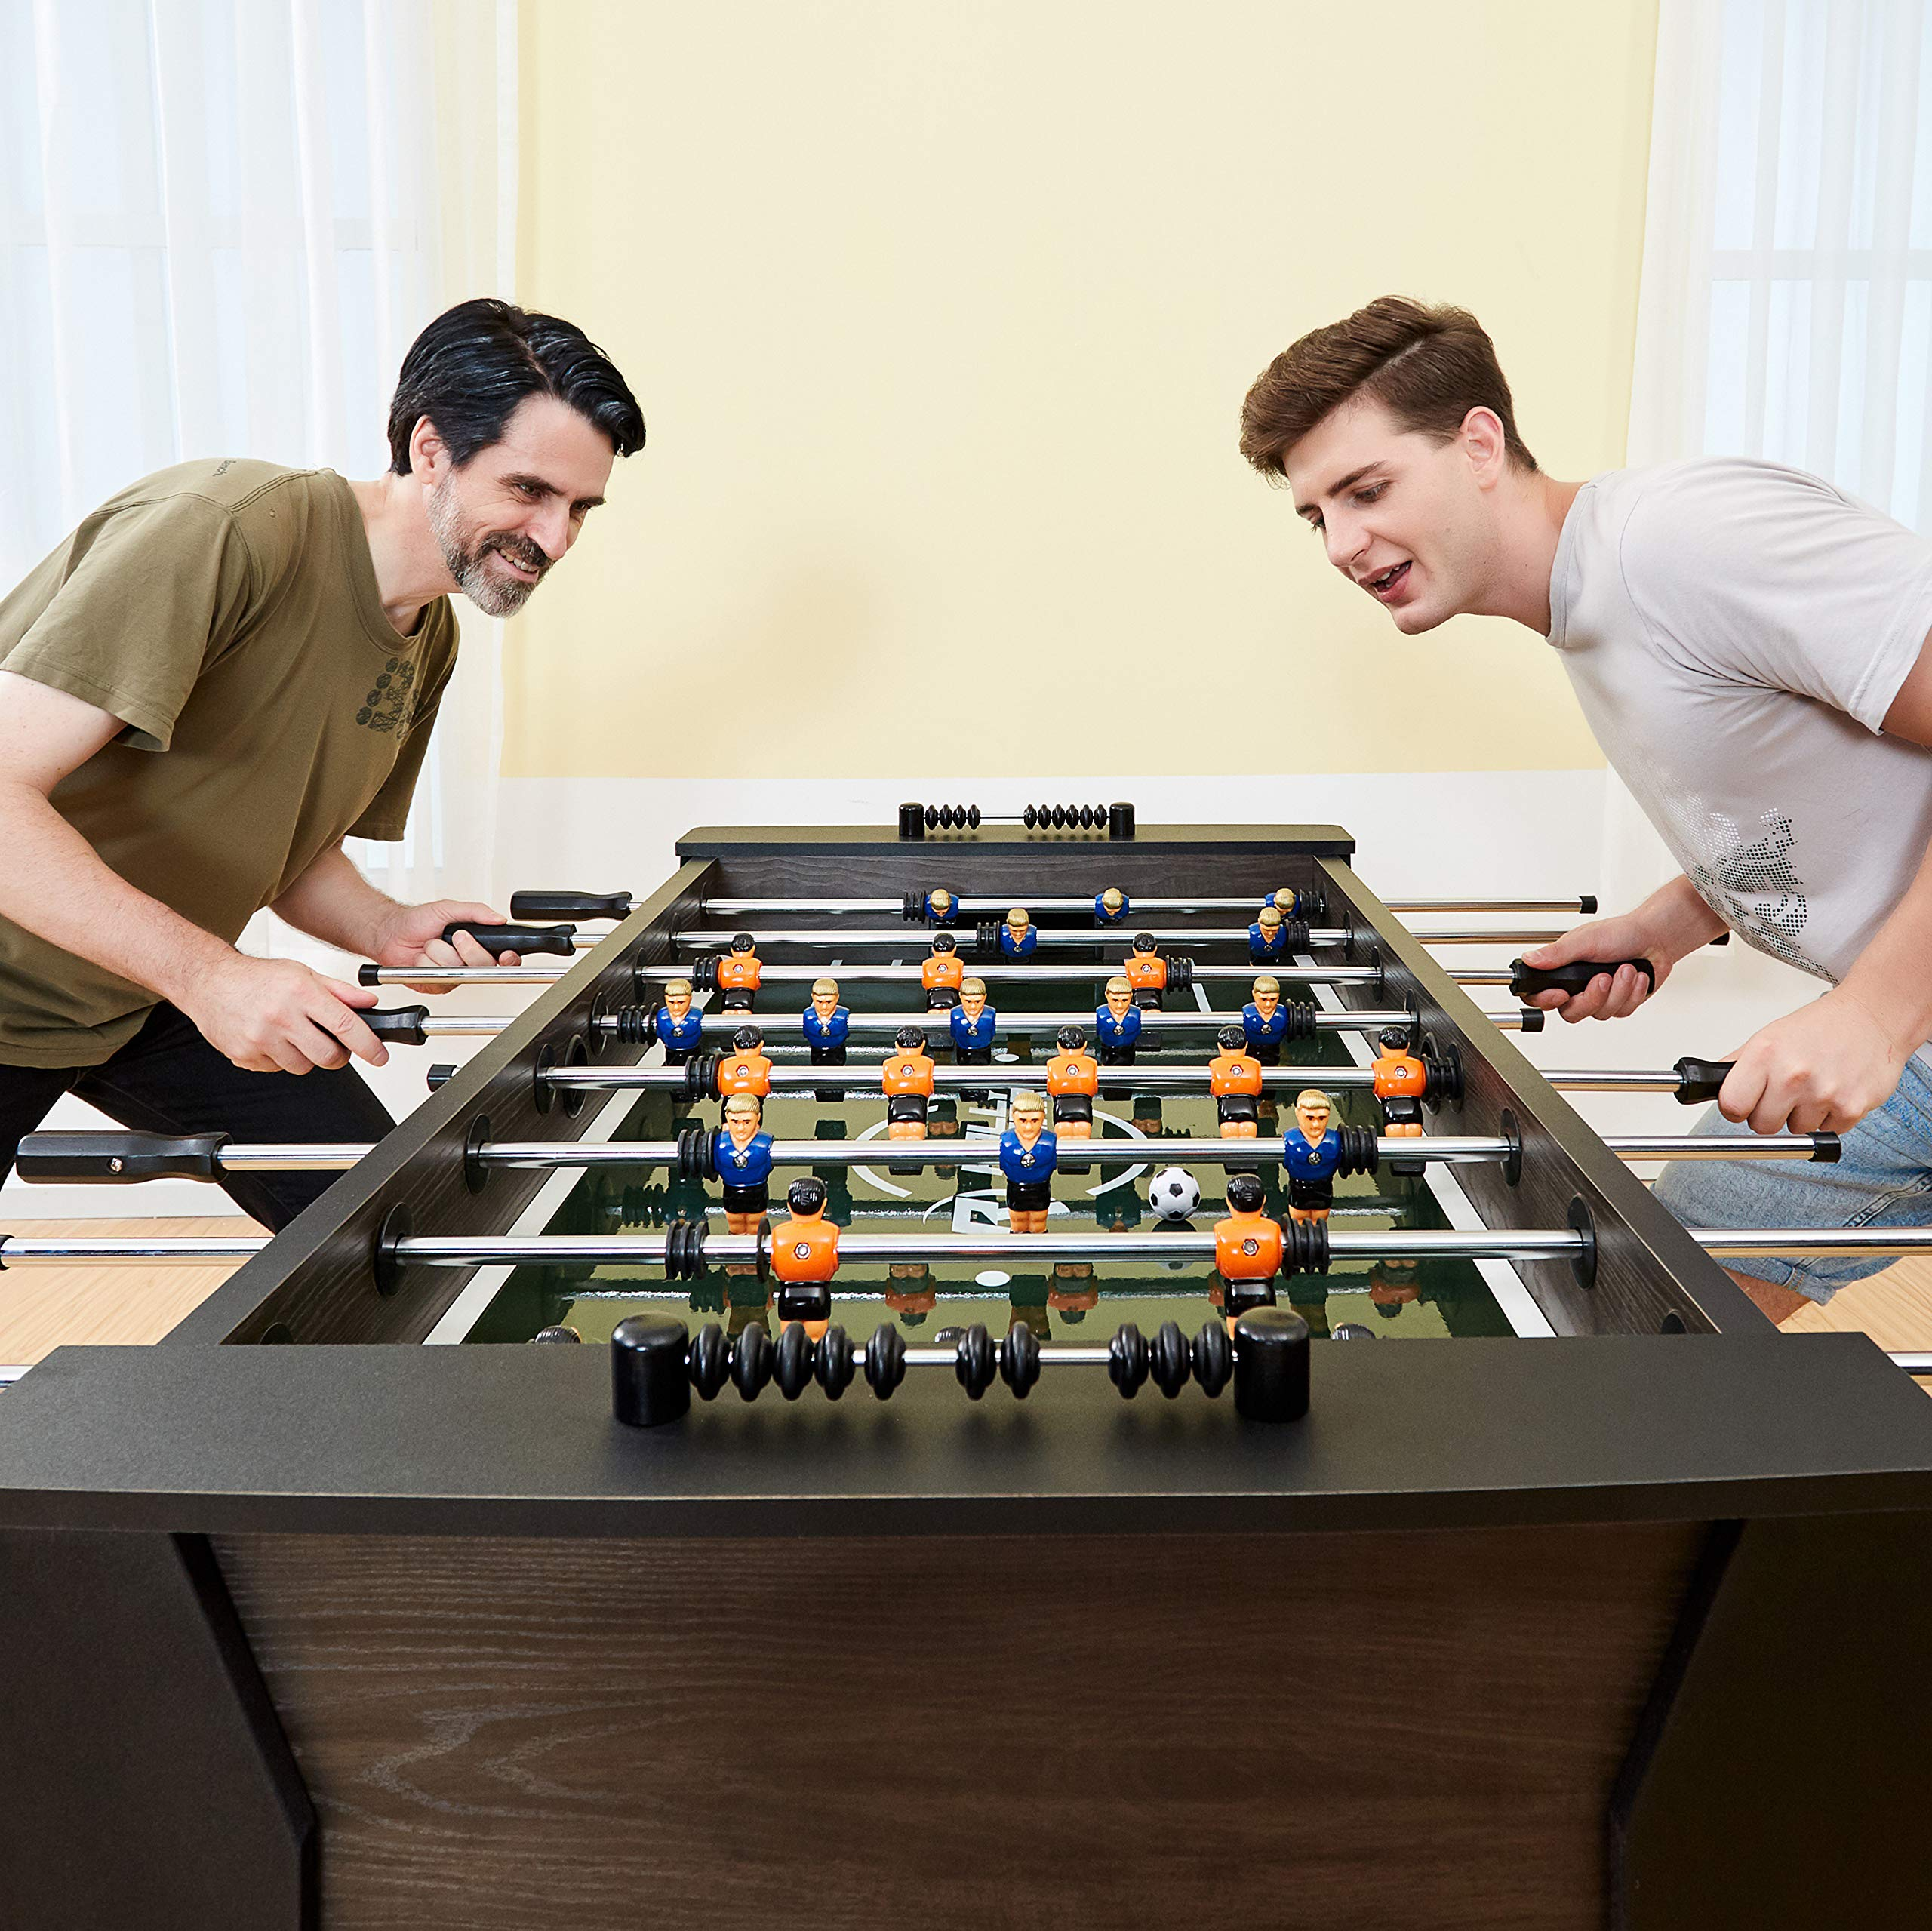 """Rally and Roar Foosball Table Game – 56"""" Standard Size Fun, Multi Person Table Soccer Adults, Kids - Recreational Foosball Games Game Rooms, Arcades, Bars, Parties, Family Night by Rally and Roar (Image #13)"""